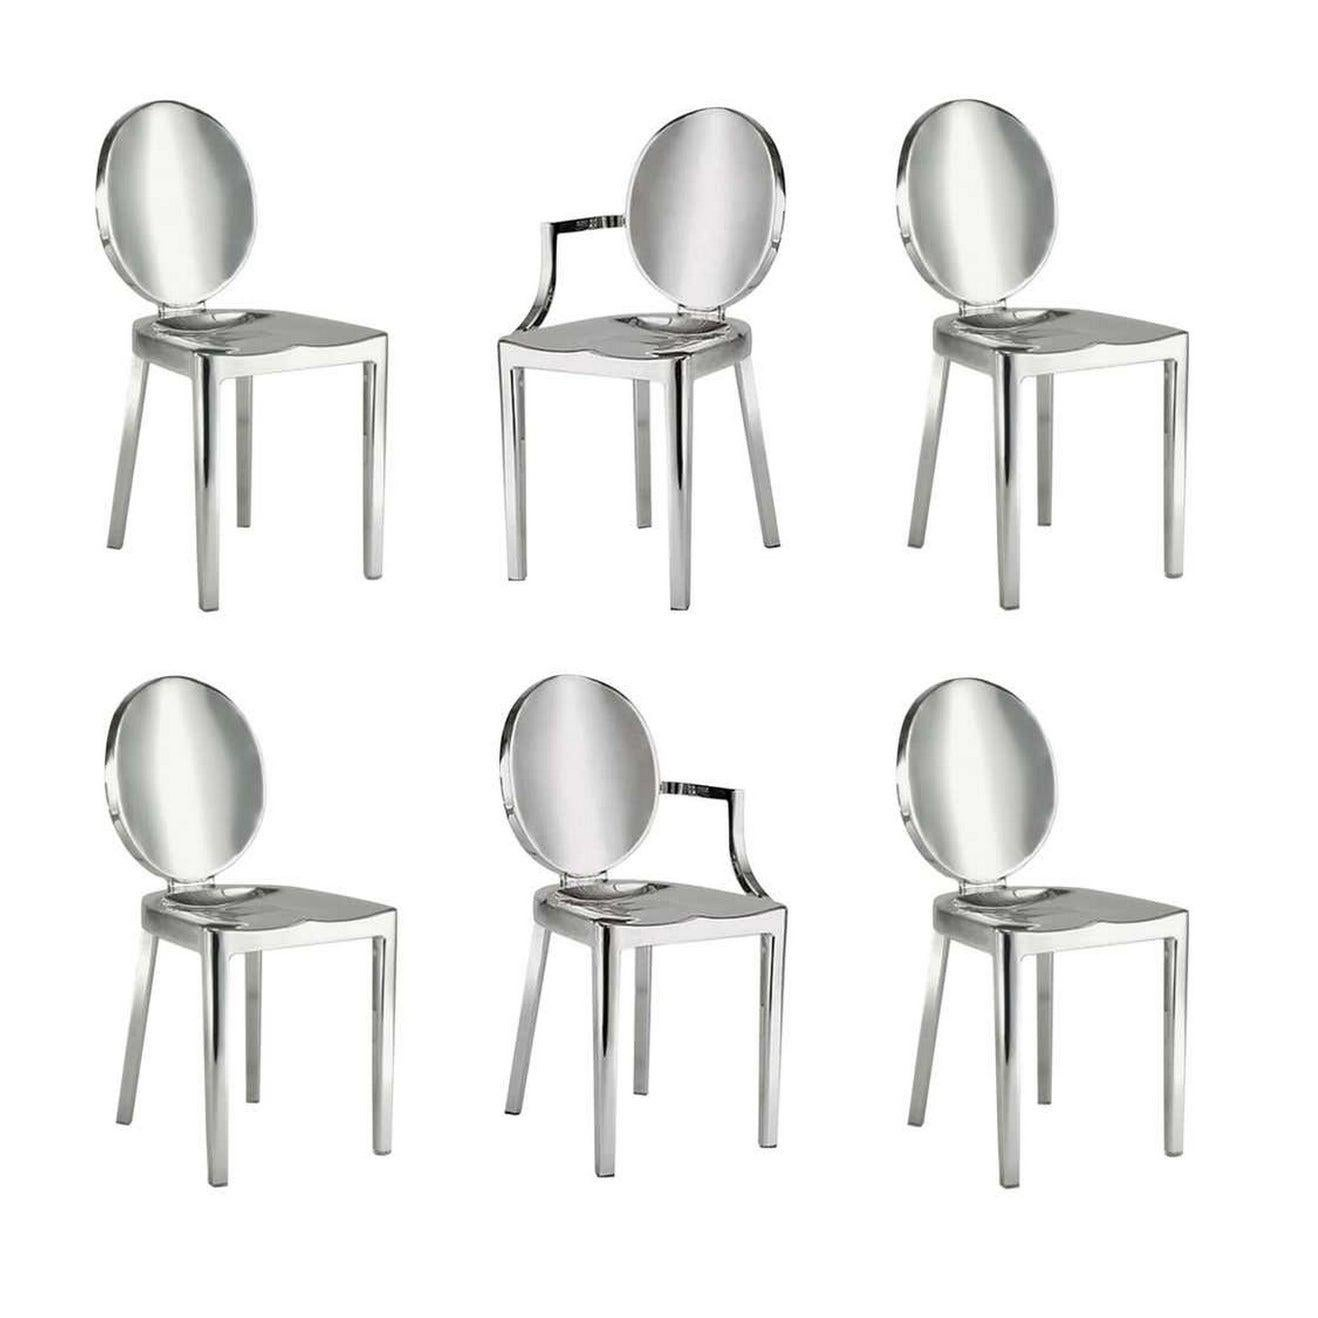 In Stock in Los Angeles, Set of 6 Kong Polished Aluminum Chairs, Philippe Starck